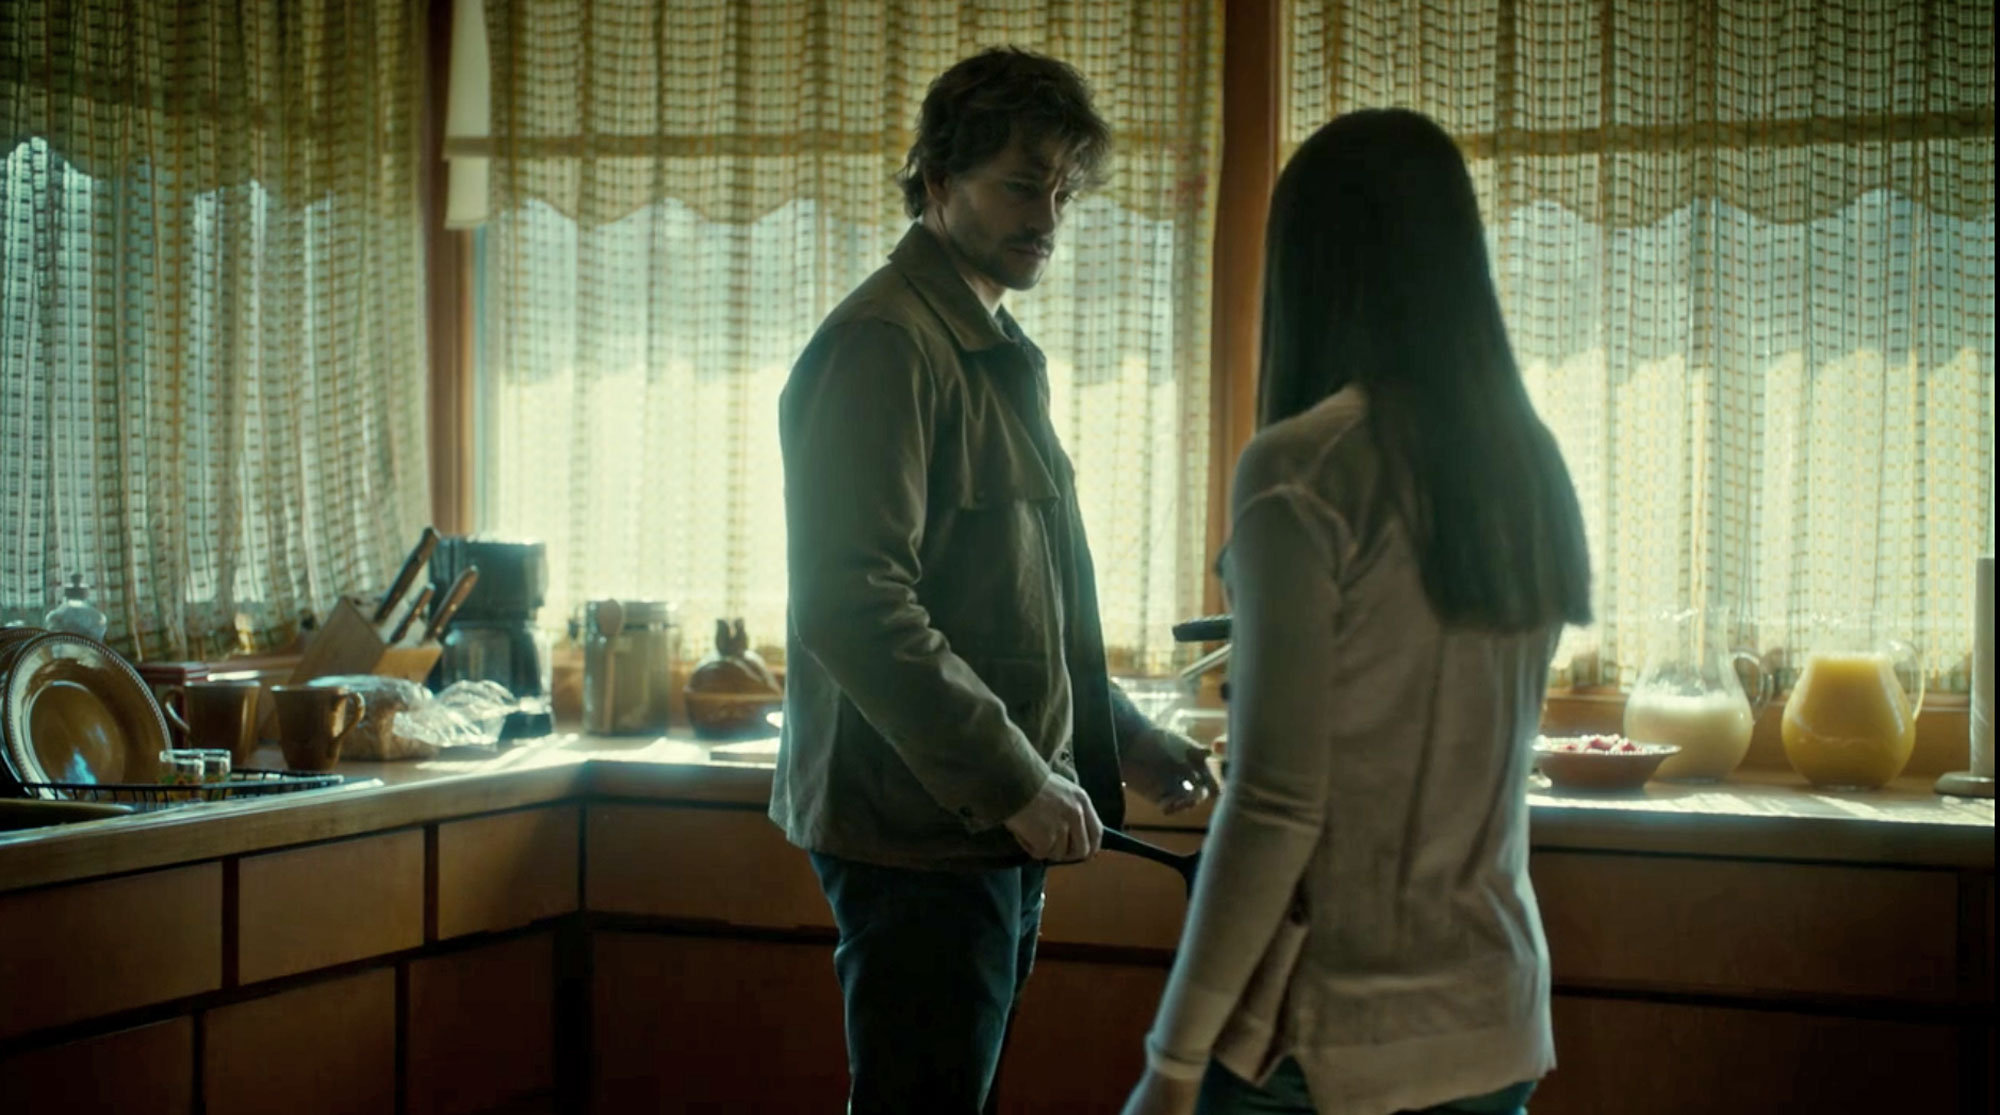 Waxed Cotton Jacket kitchen final scene with Hannibal